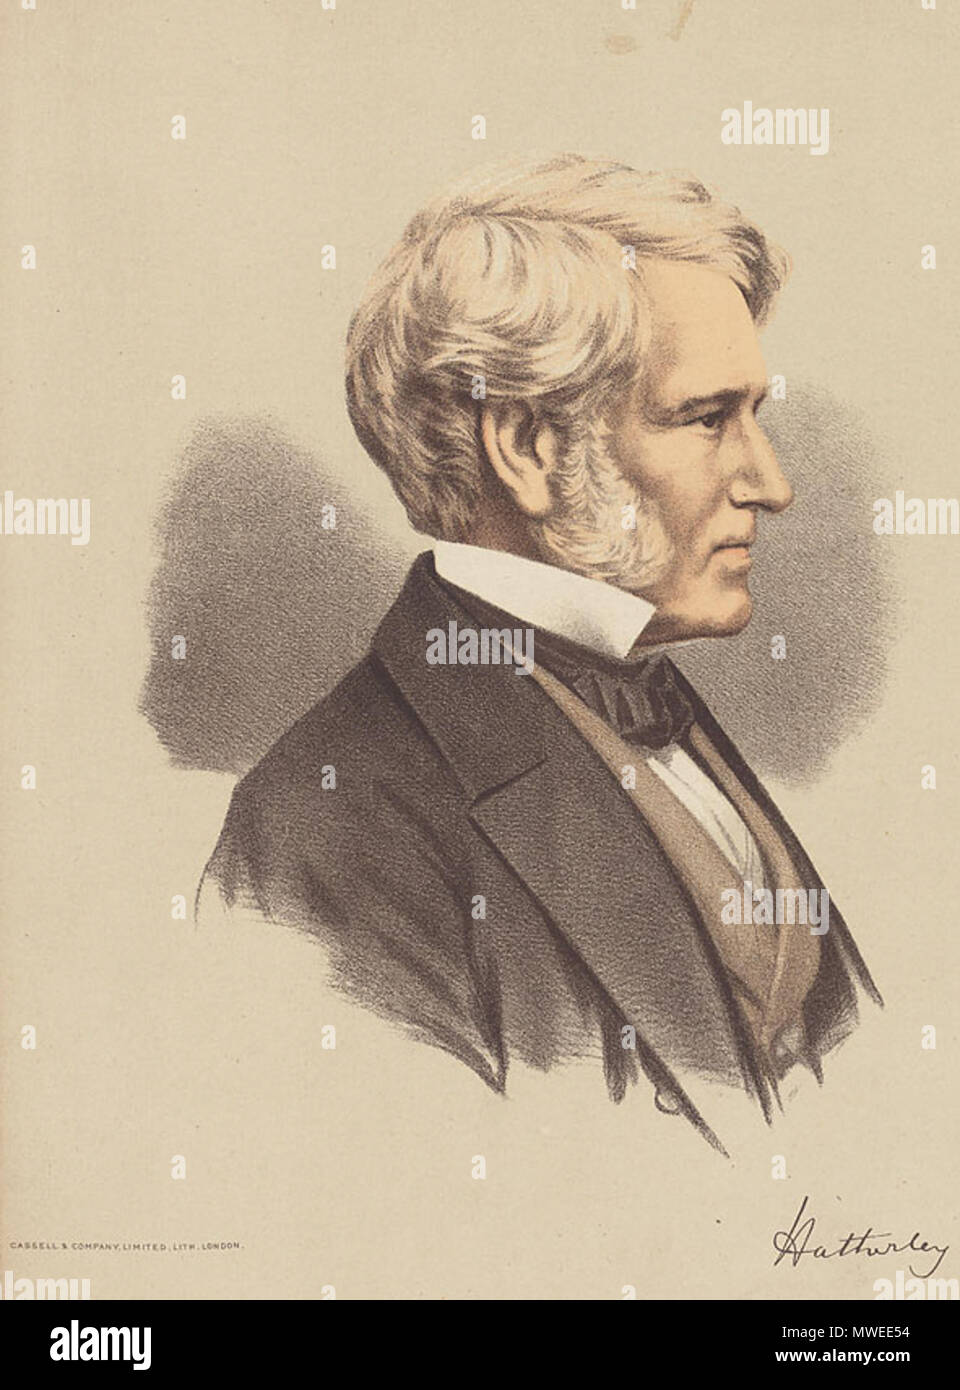 . William Wood, 1st Baron Hatherley (1801-1881) . Contemporary portrait. Cassell, Petter, Galpin, & Co. Lithographers 14 1stLordHatherley - Stock Image